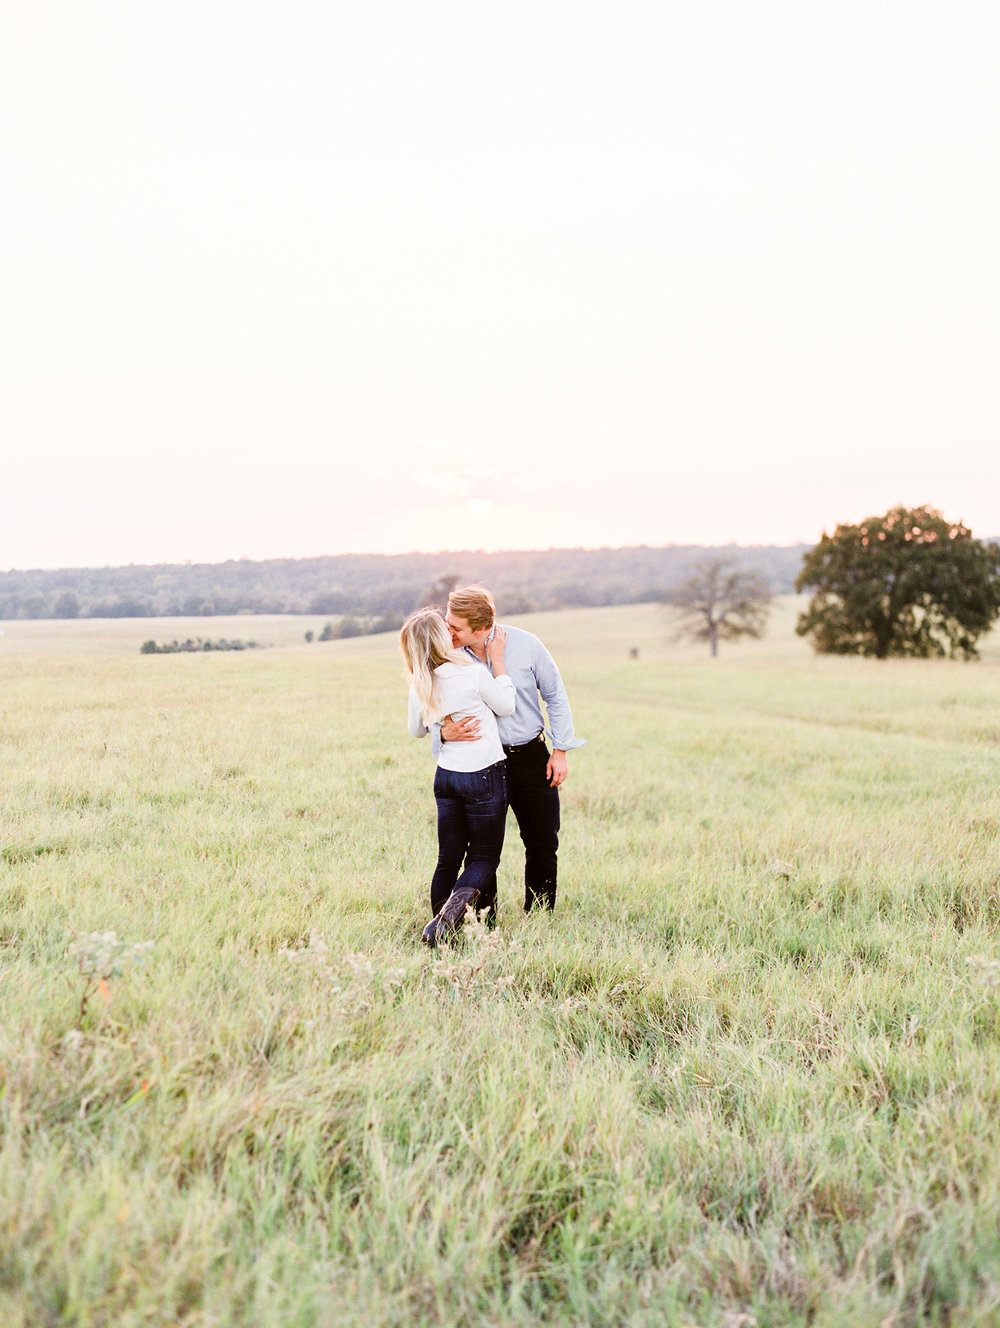 Lauren+John+Engaged+TX-115.jpg